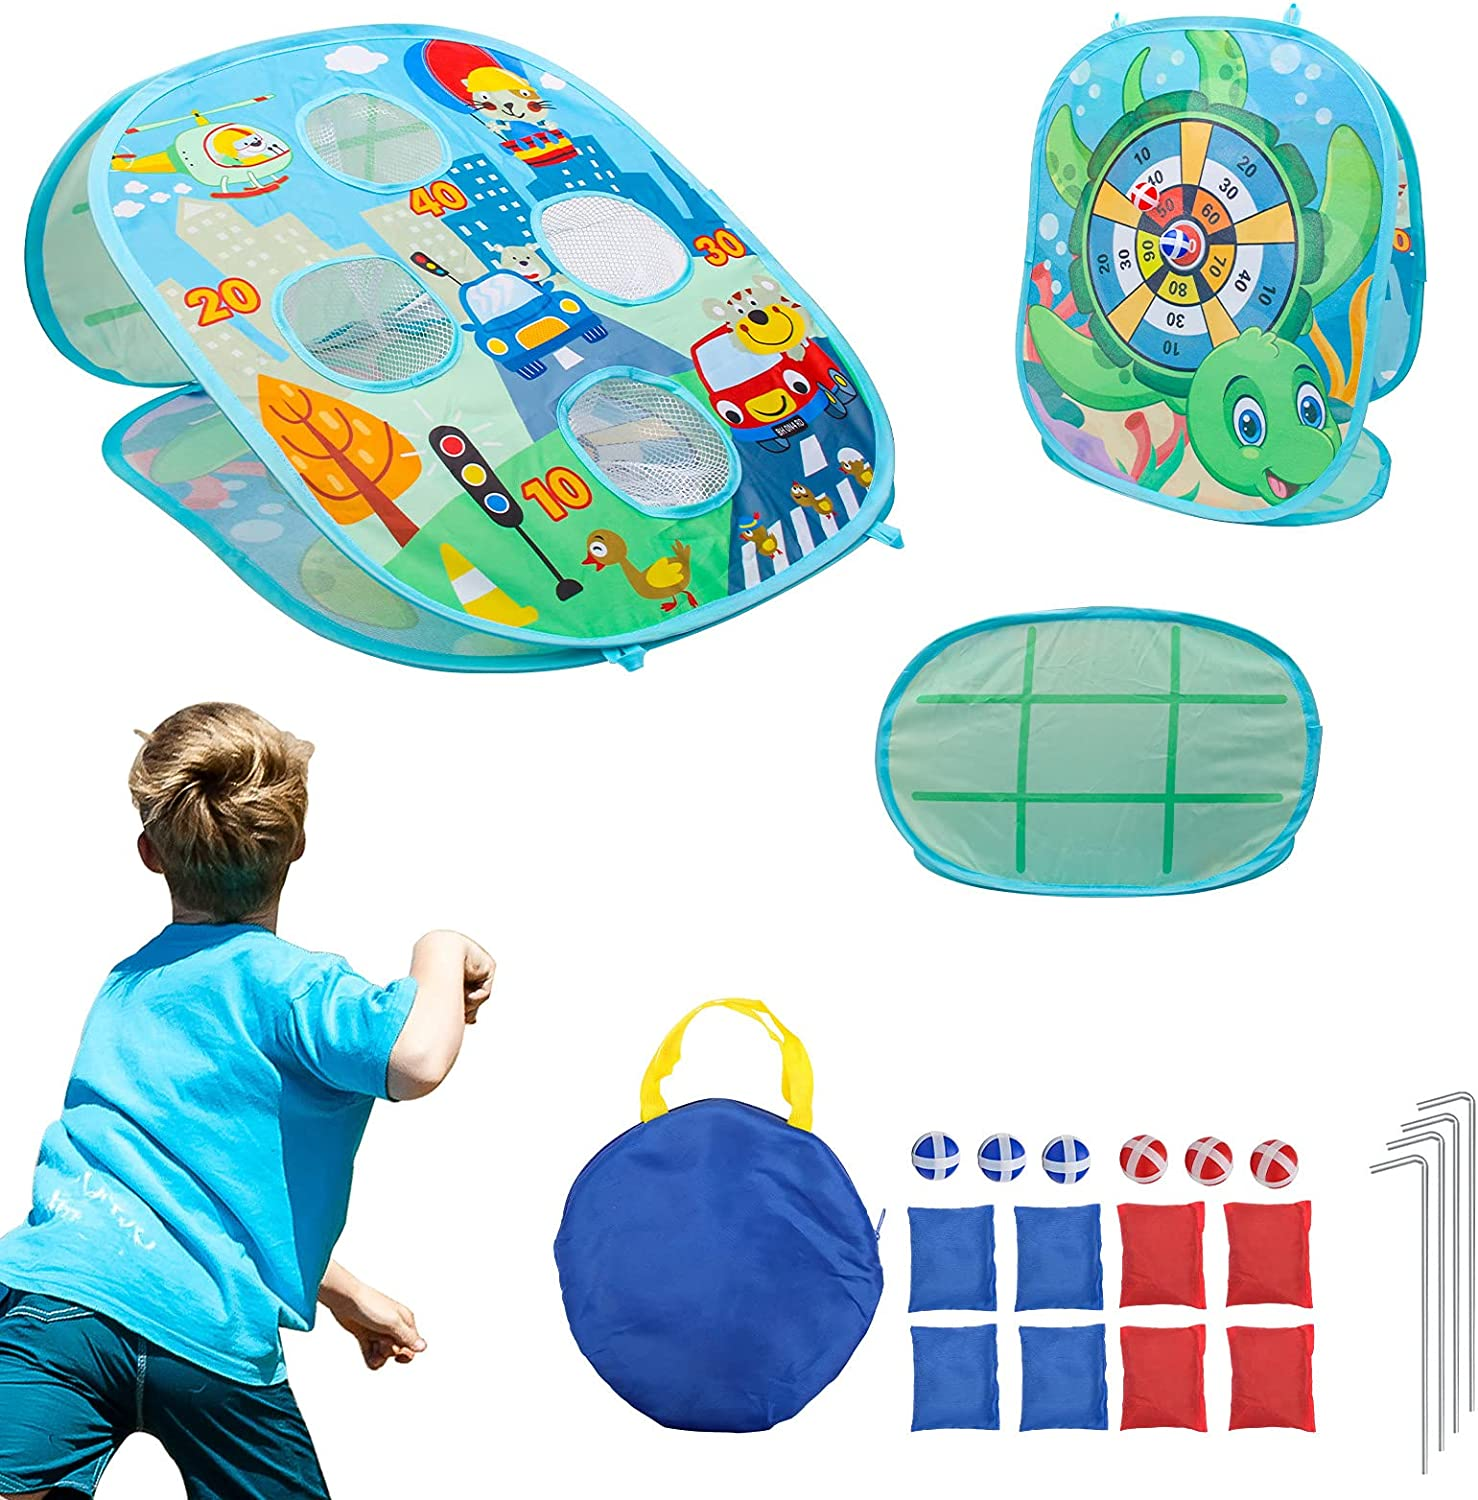 Max 85% OFF 5% OFF Bean Bag Toss Games for Kids Bags Set Hand Toy Outdoor